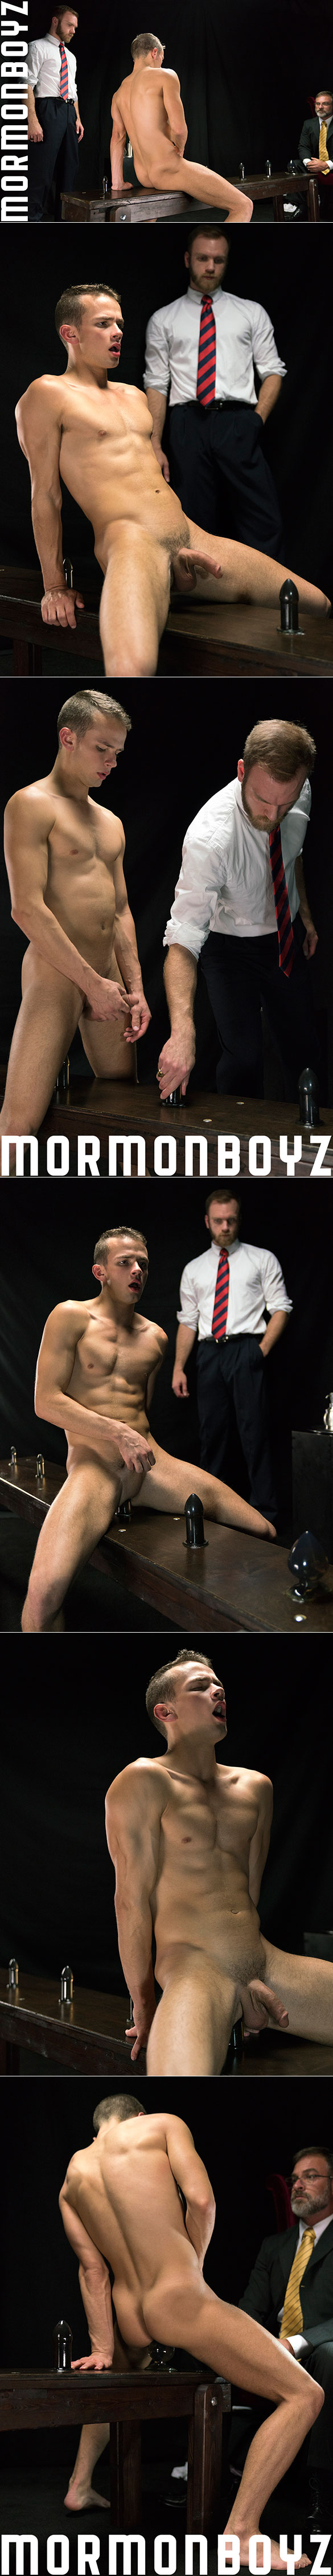 "MormonBoyz: Bishop Gibson barebacks Elder Land in ""Atonement"""